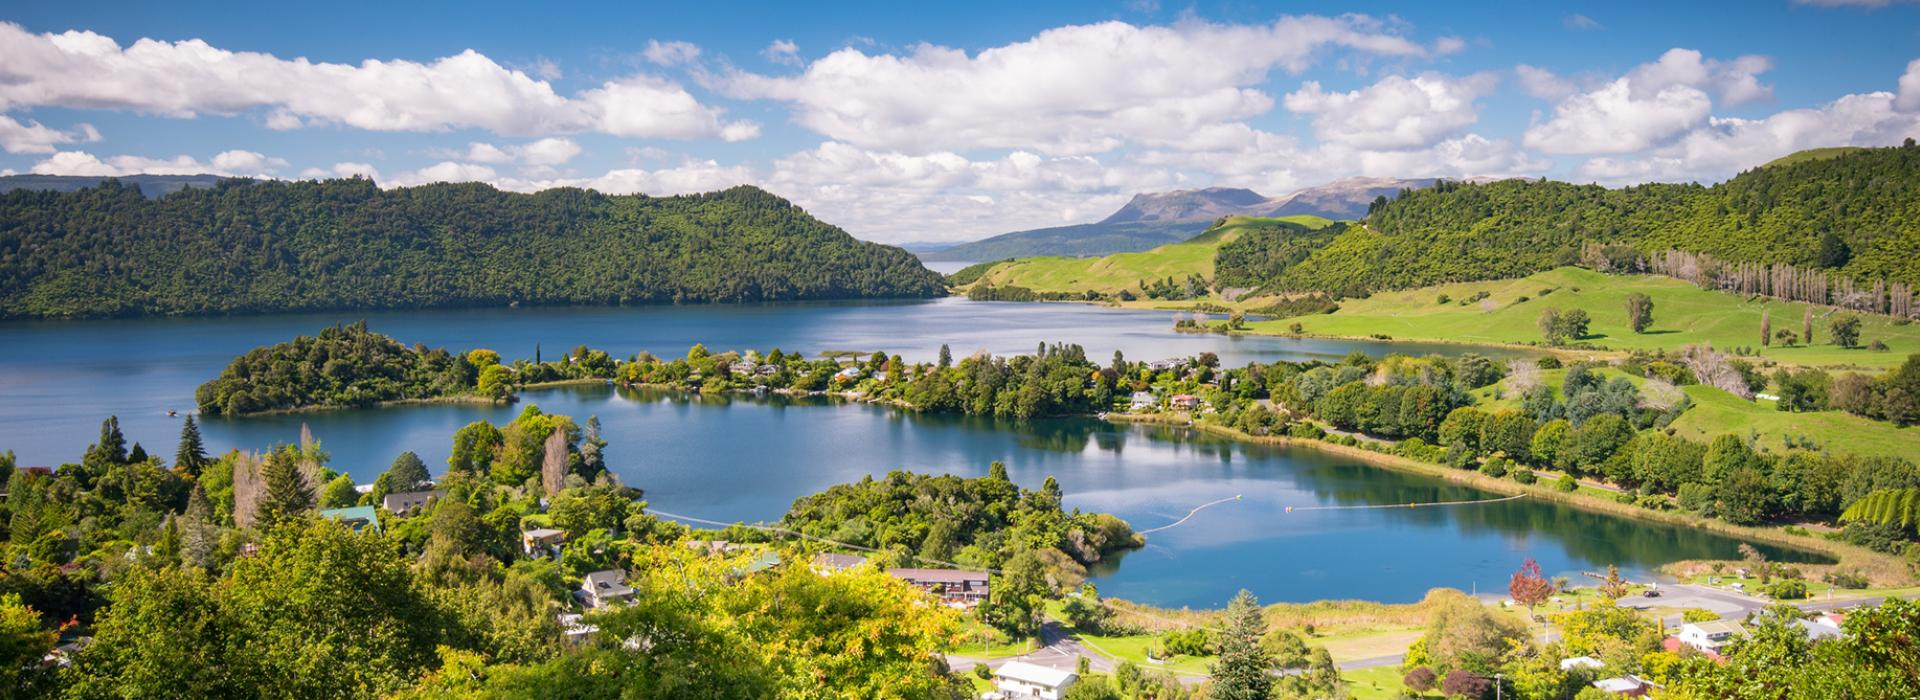 Lakes District, Rotorua, New Zealand